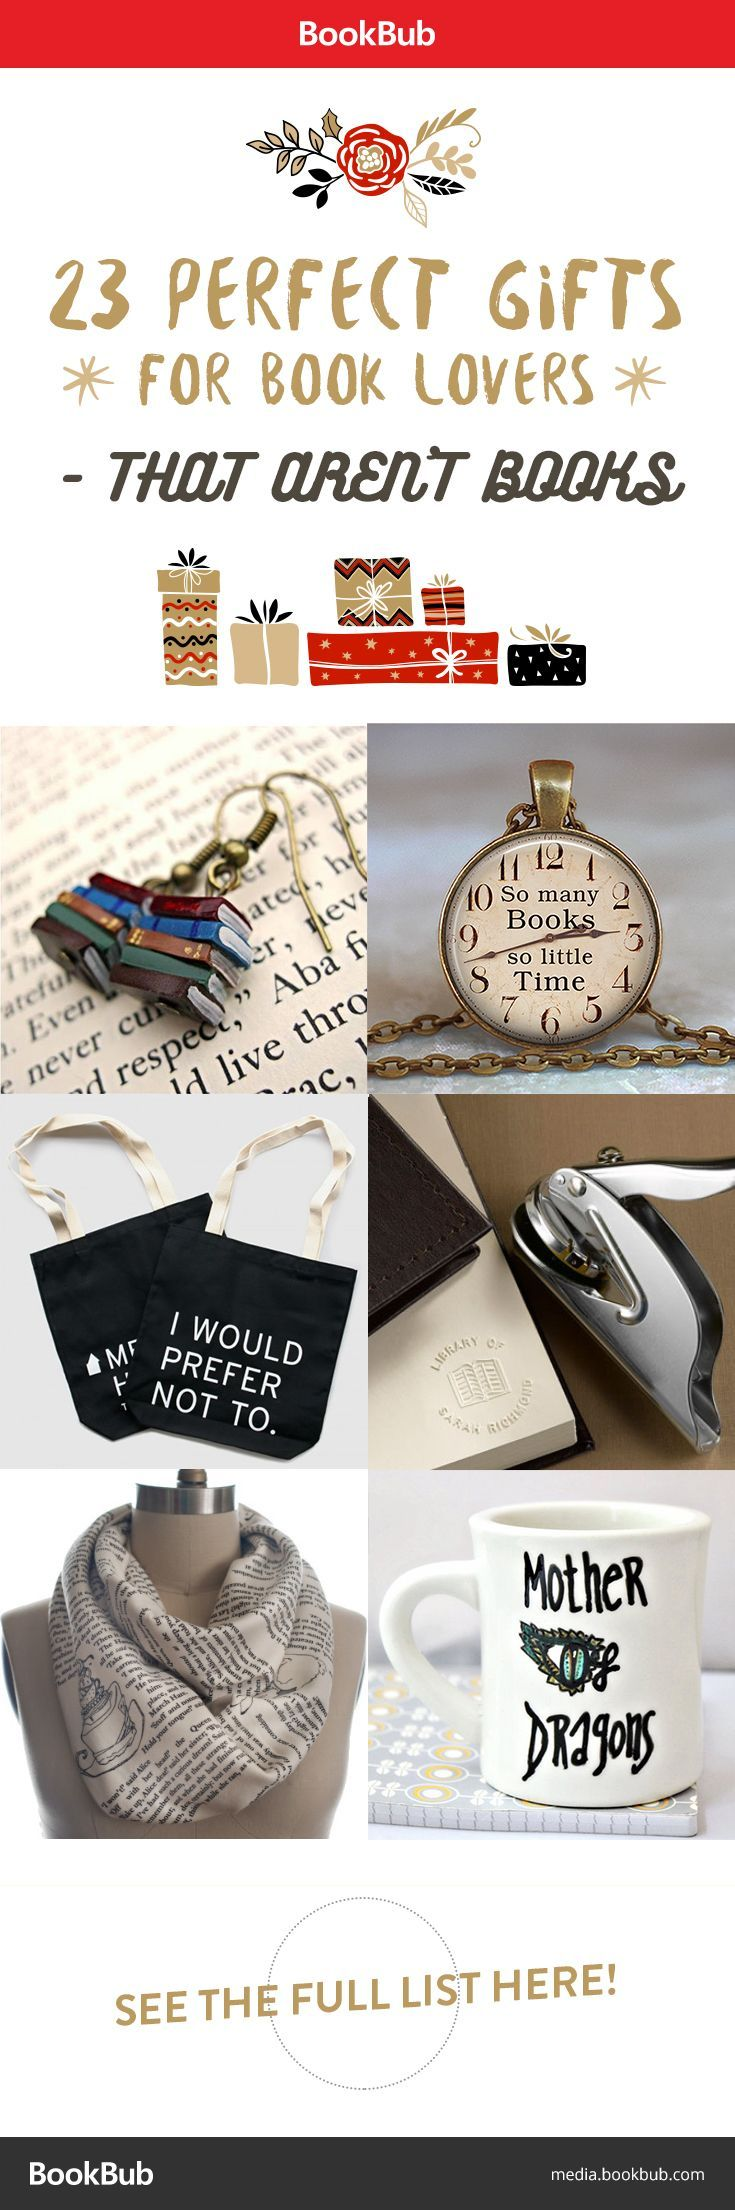 23 perfect gifts for book lovers u2014 that arenu0027t books